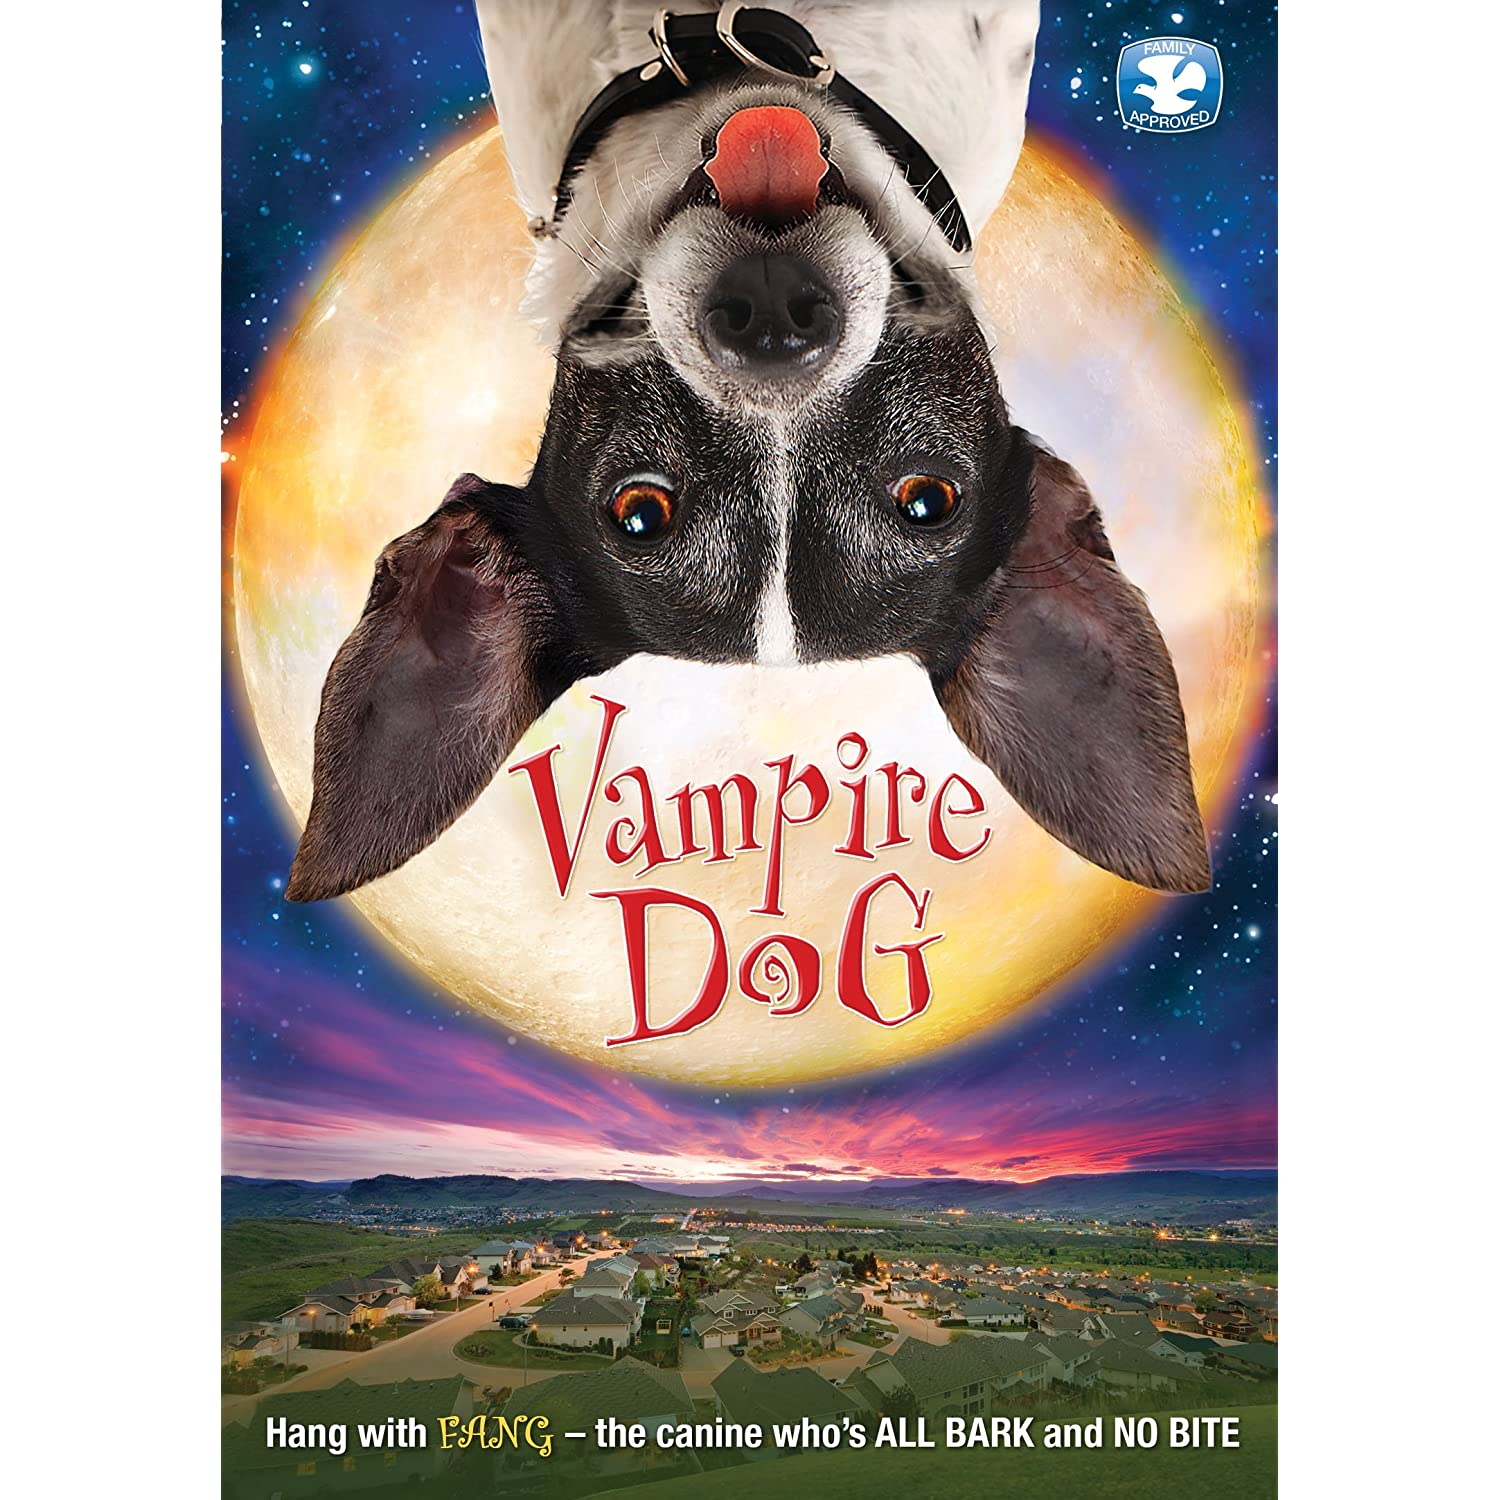 Vampire Dog (2012) (Rated: NR) - A boy unwittingly adopts a 600 year old talking vampire dog and soon discovers that when they face their fears they can do anything.